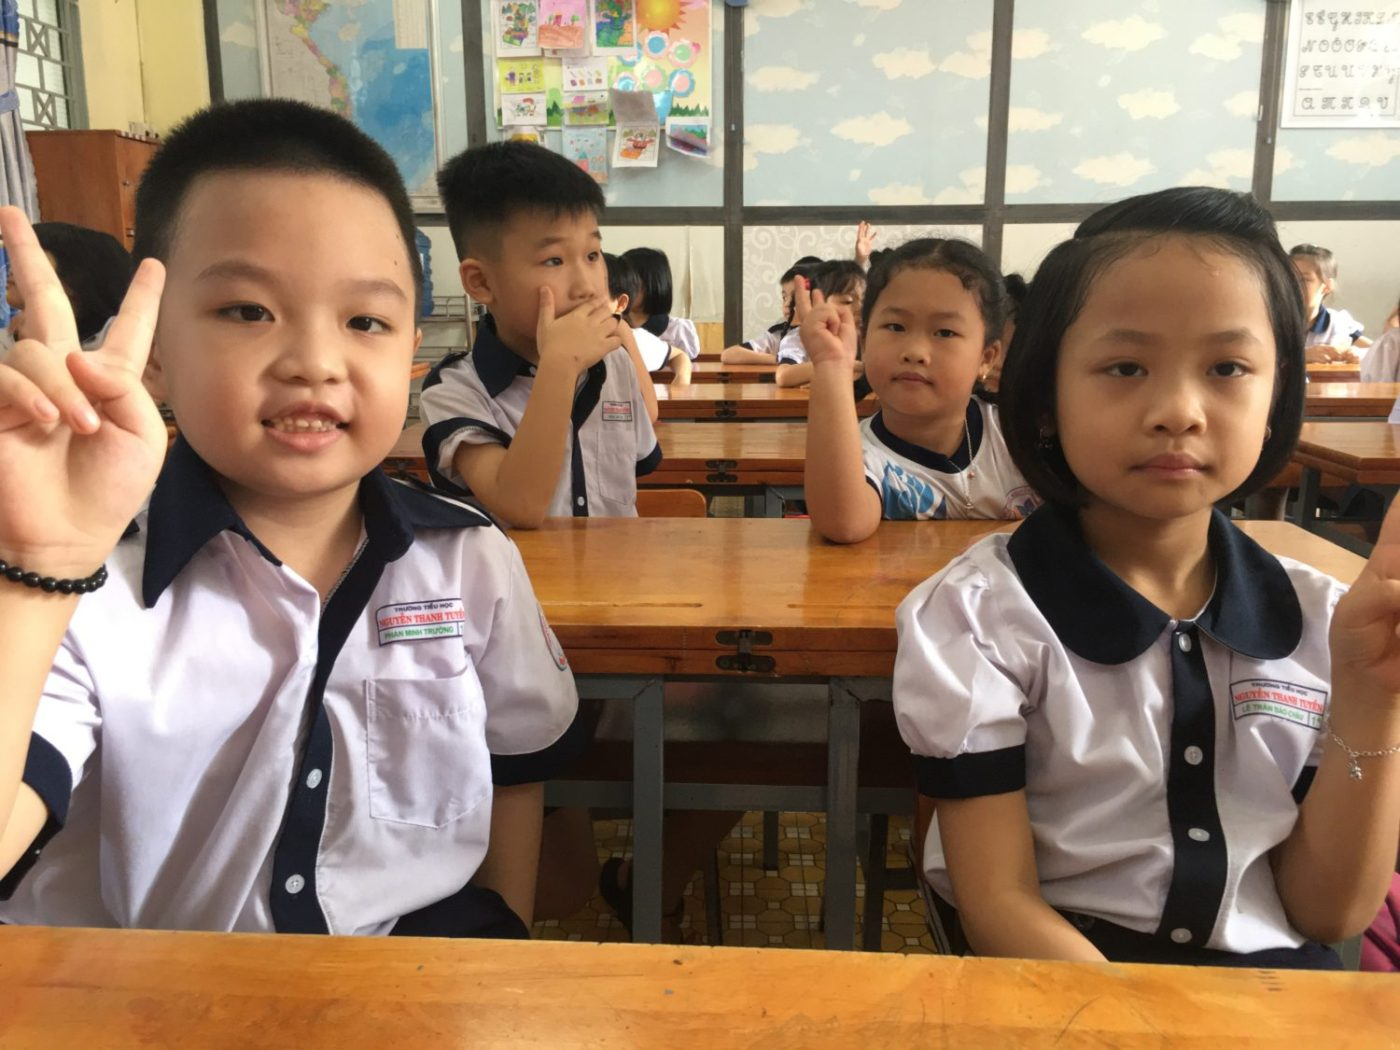 First-grade-English-class-at-Nguyen-Thanh-Nguyen-Primary-School-in-Tan-Binh-District-Ho-Chi-Minh-City-on-1st-day-back-to-school-from-lockdown-051120-by-teacher-photographer-©Le-Thi-Xuan-Ninh-1400x1050, Viet Nam vs. COVID-19: How one small nation defeated a global enemy, World News & Views